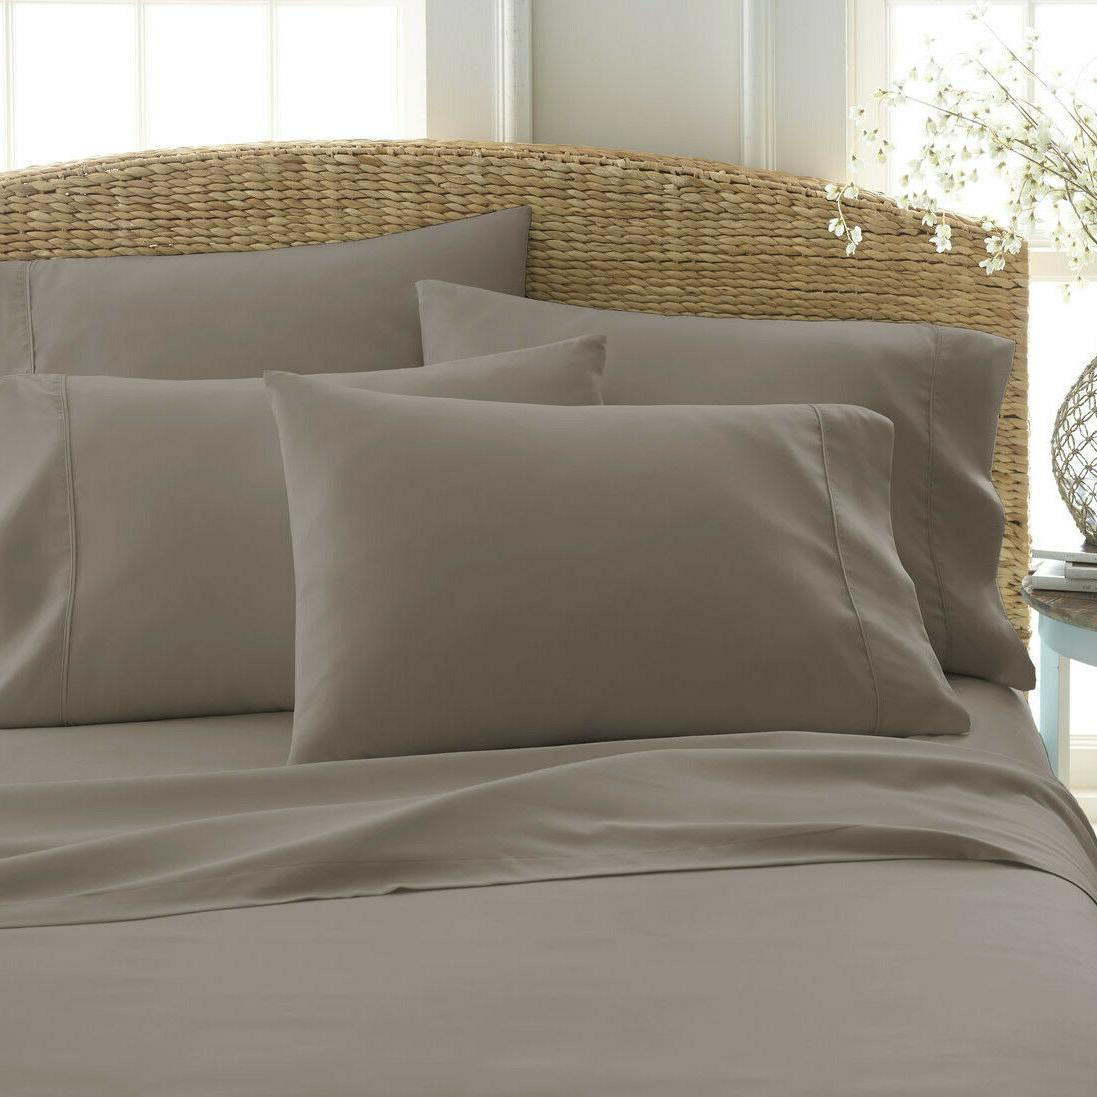 KING SIZE PIECE BED SHEET 4 CASES